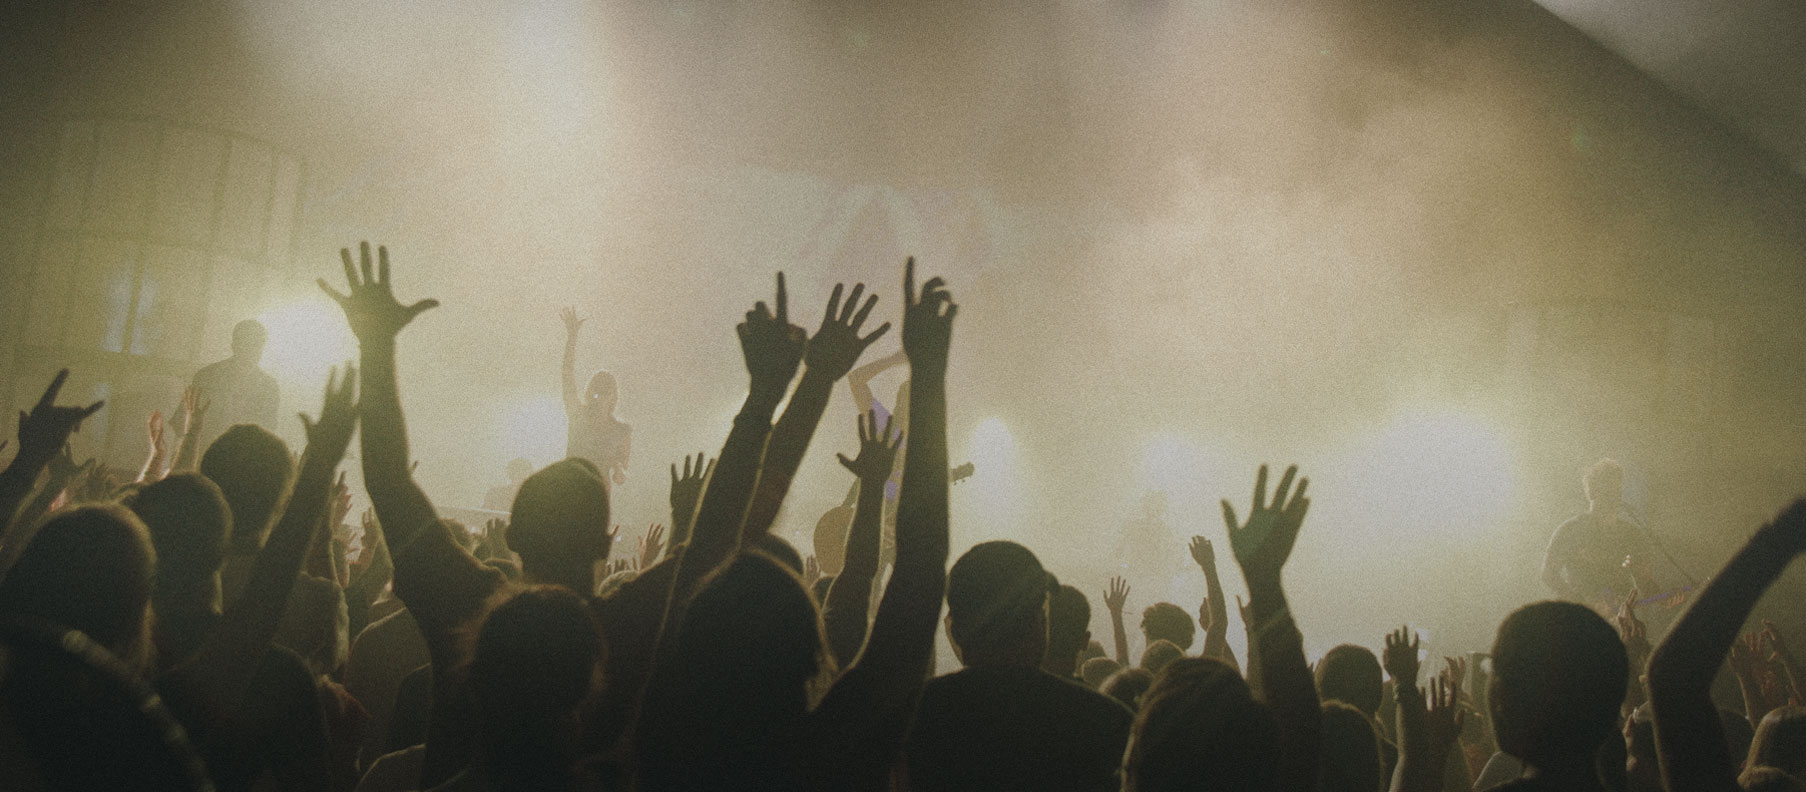 move a 5 day youth conference for high school students ciy